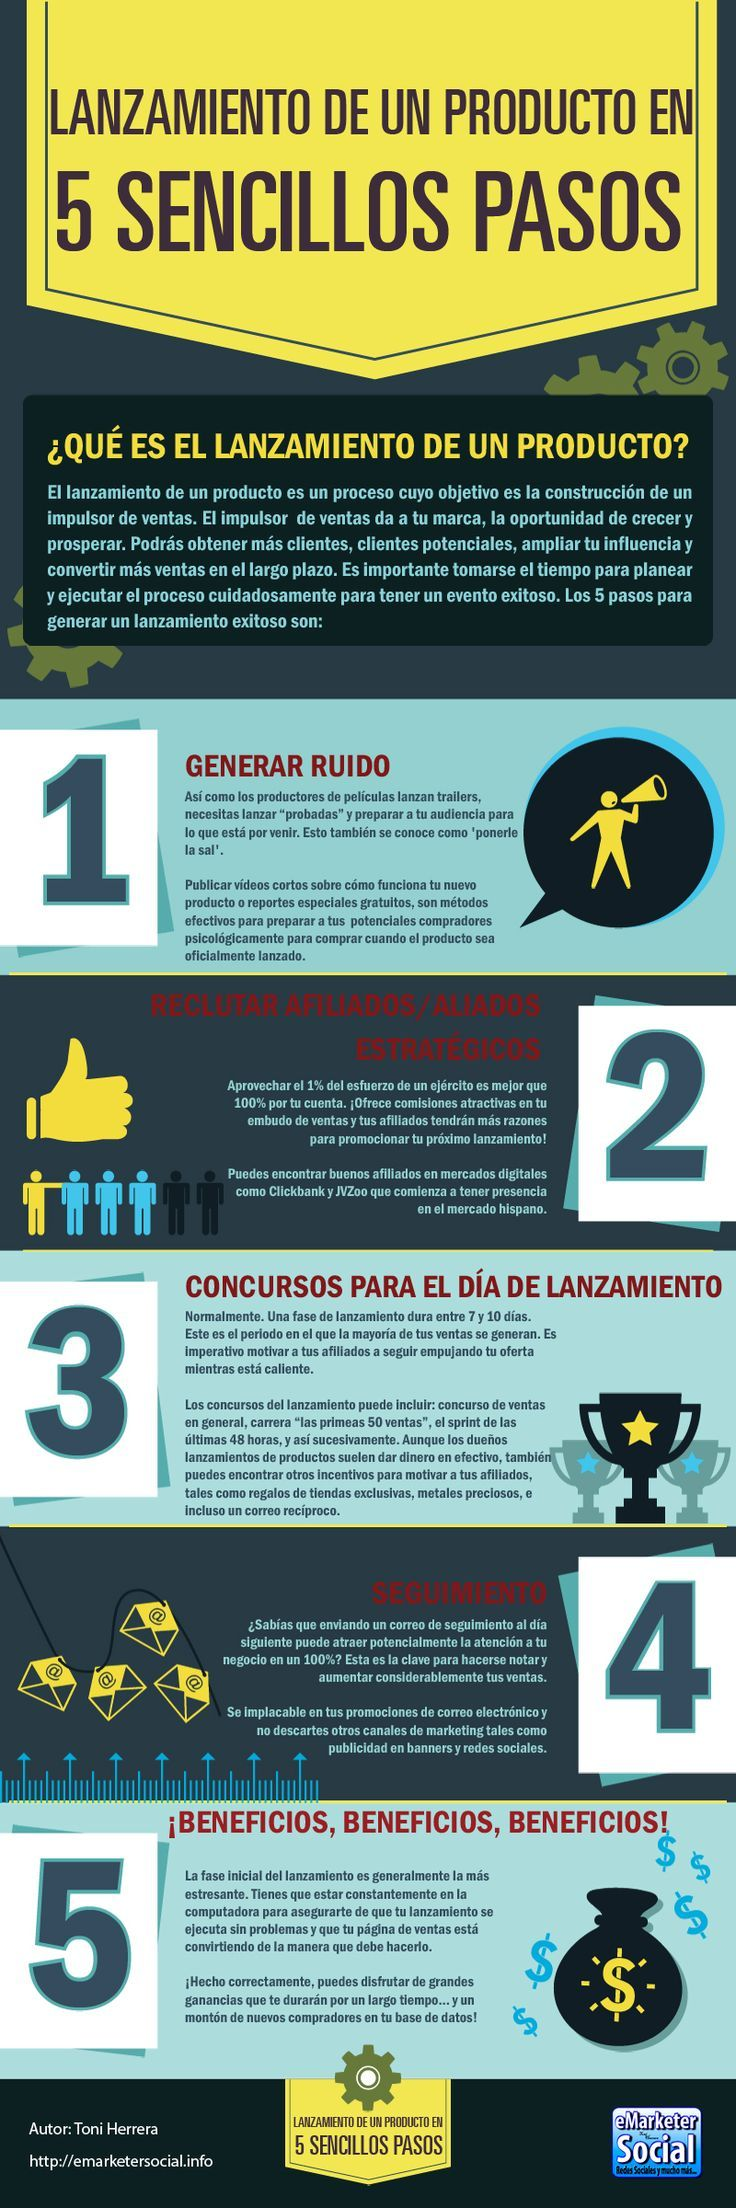 Infografía: Lanzar un Producto eMarketerSocial -eMarketerSocial What do you think of this guys? #infografias #infographic